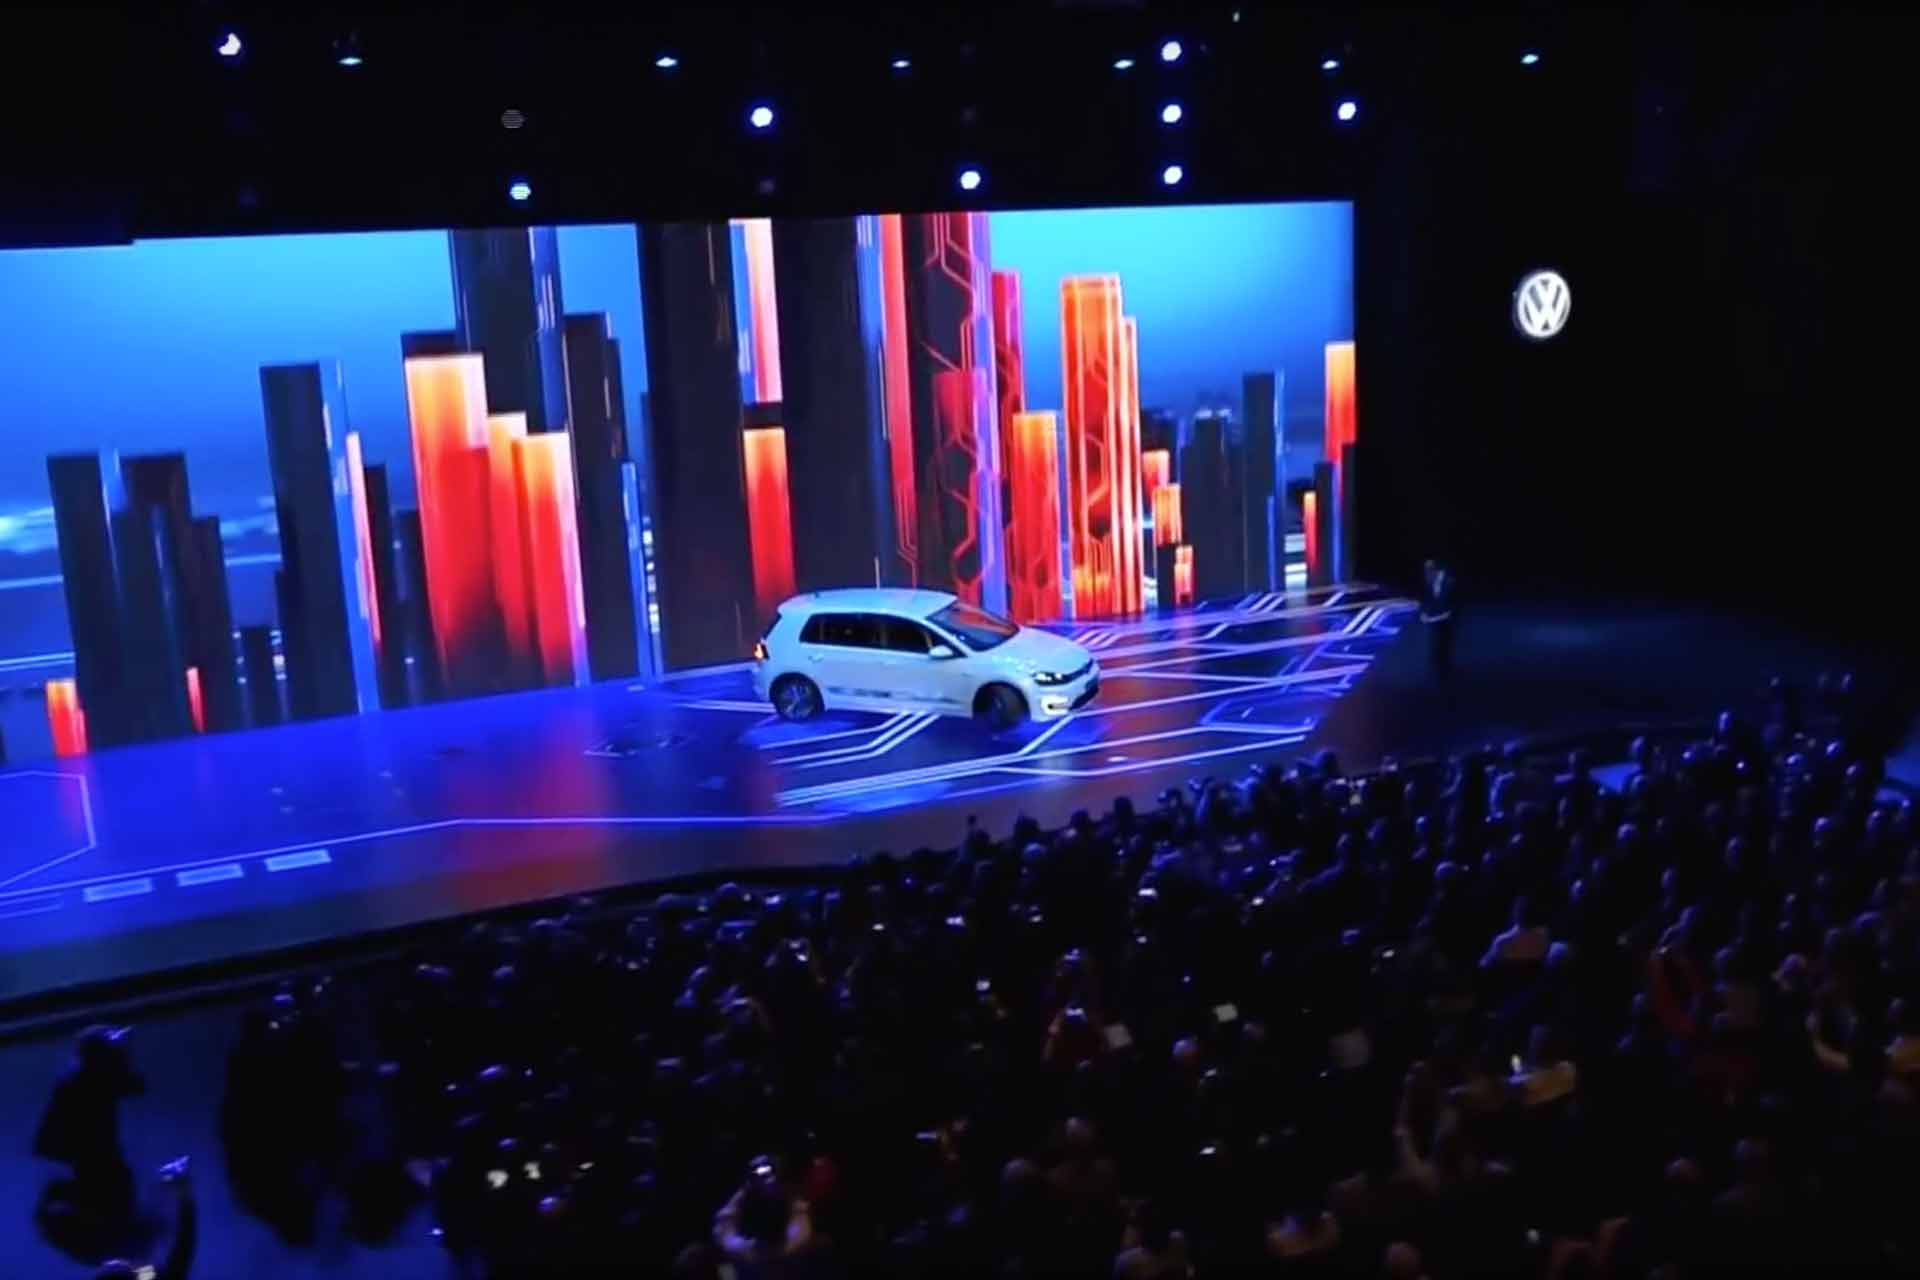 Volkswagen_CES2016_press_media_launch_event_product_display_stage_production_design_fabrication_conference_meeting_space